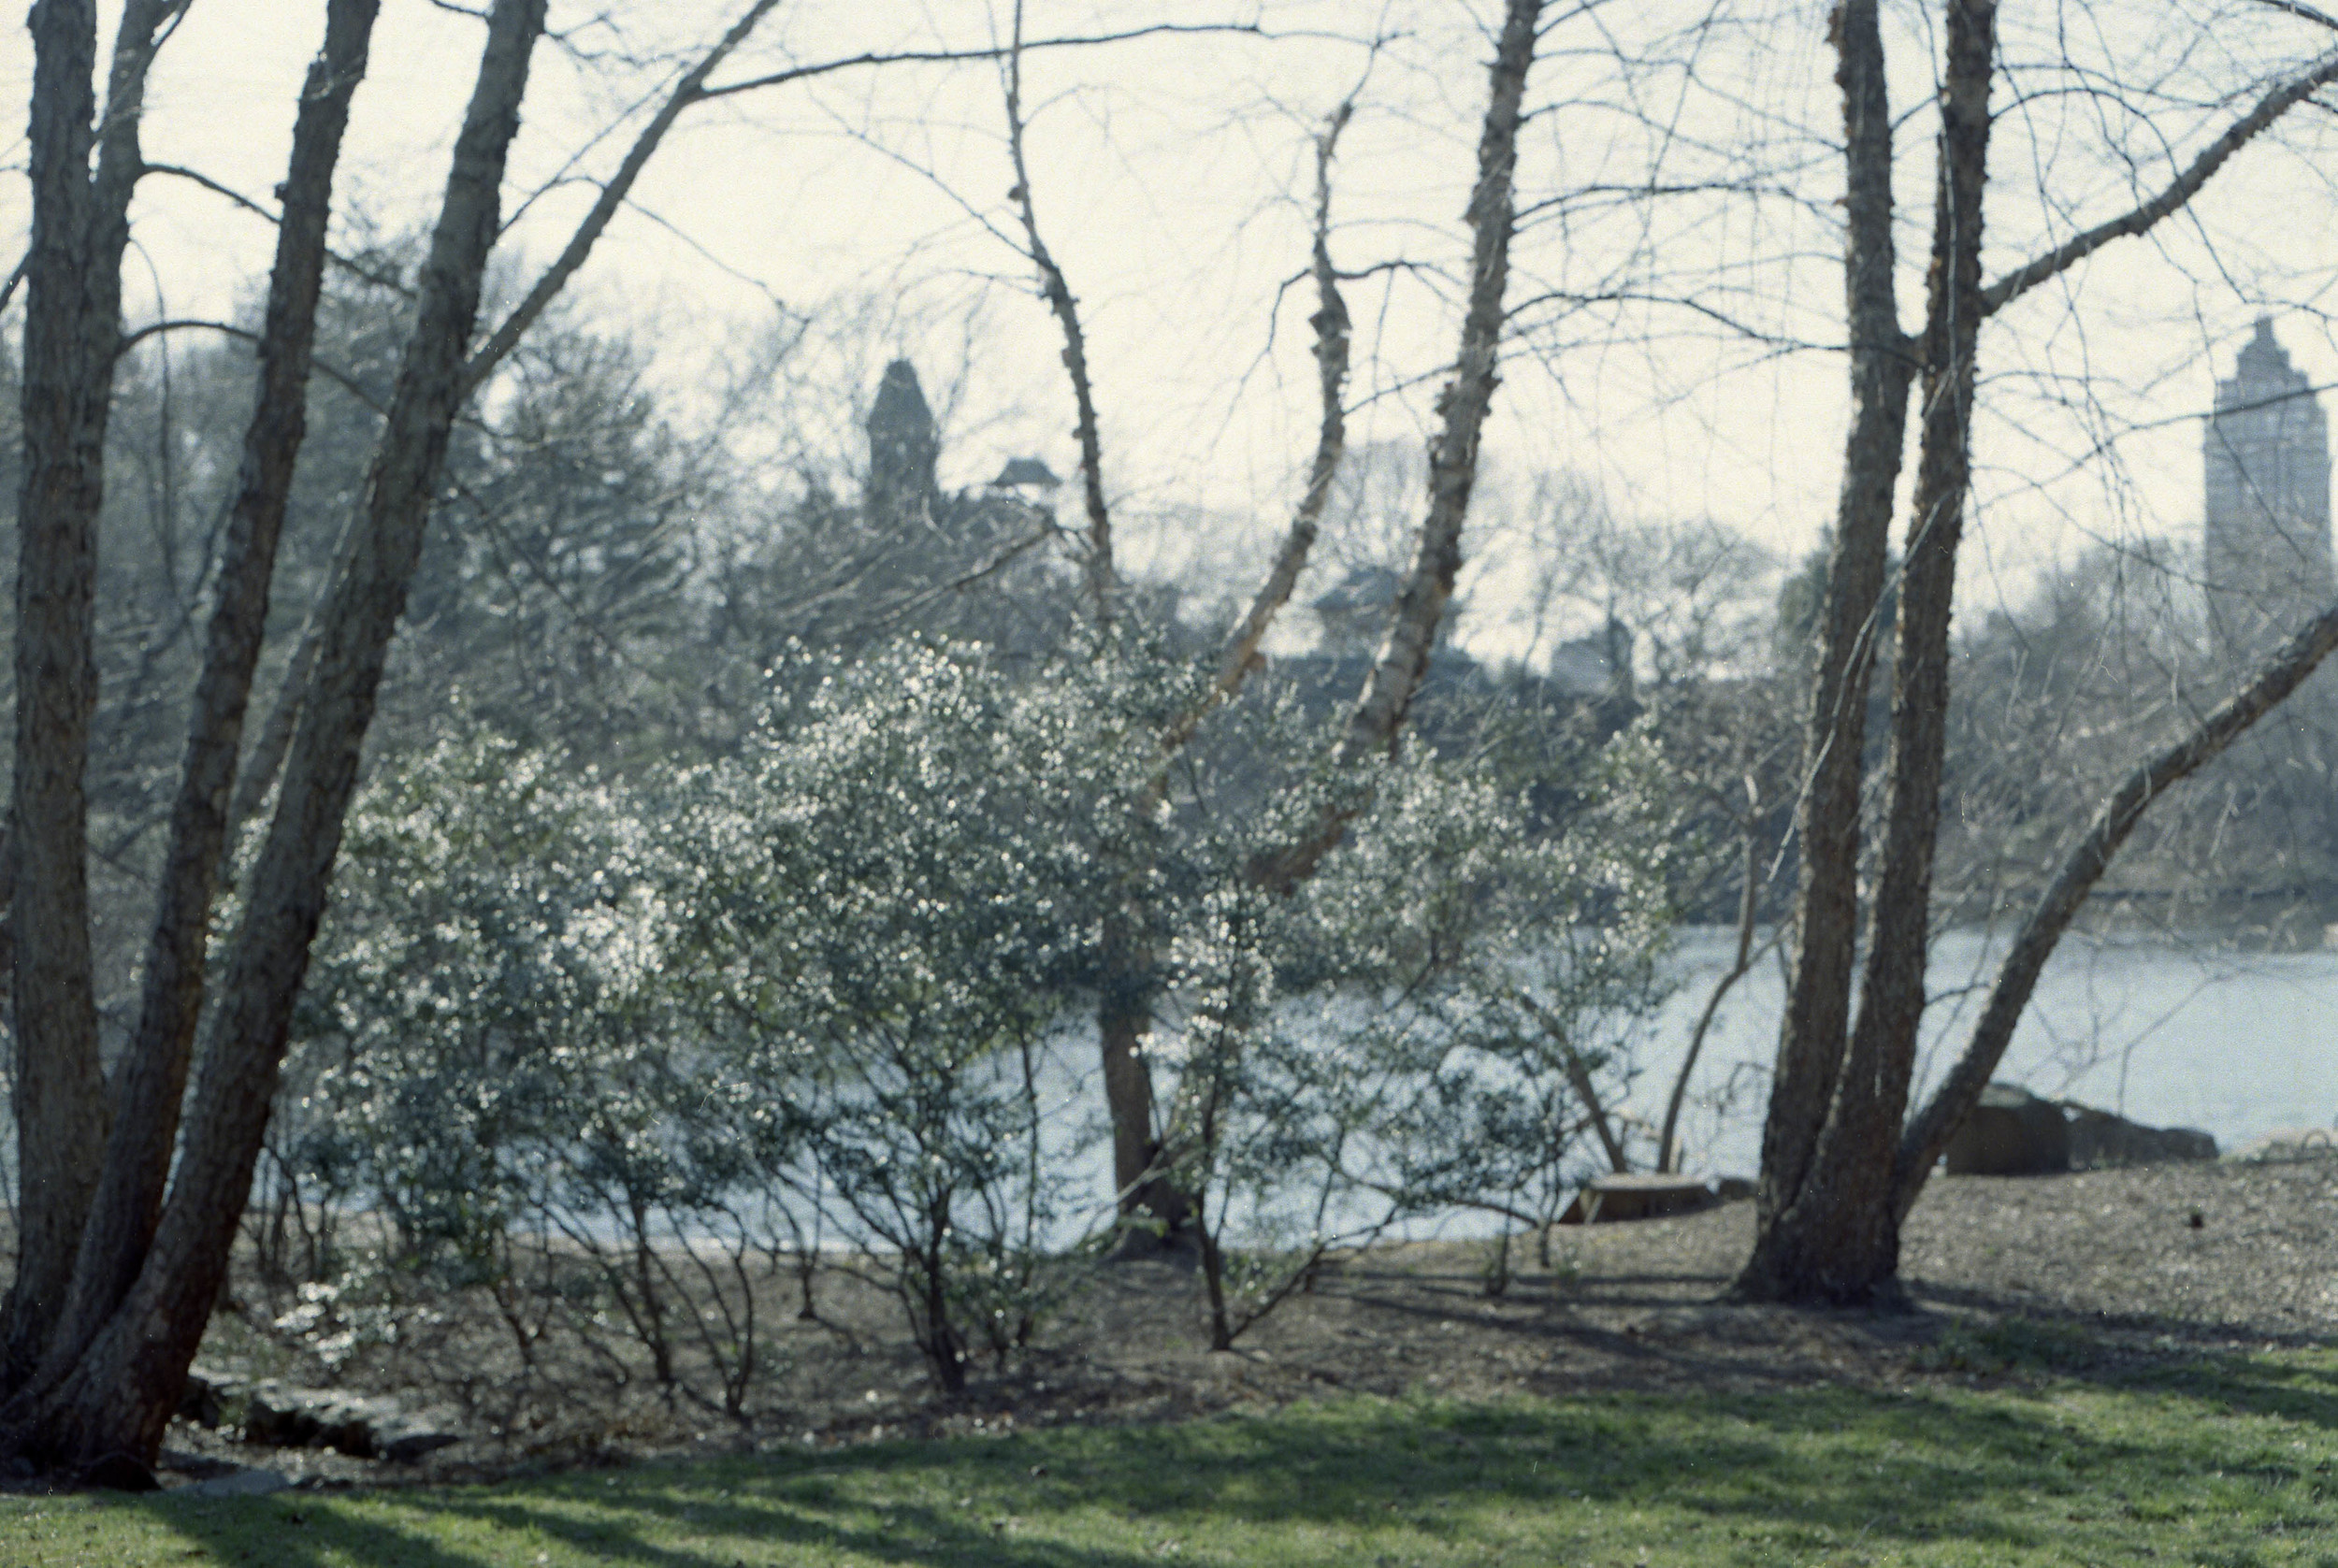 Central Park  2013  c-type print framed 62 x 84.6 cm